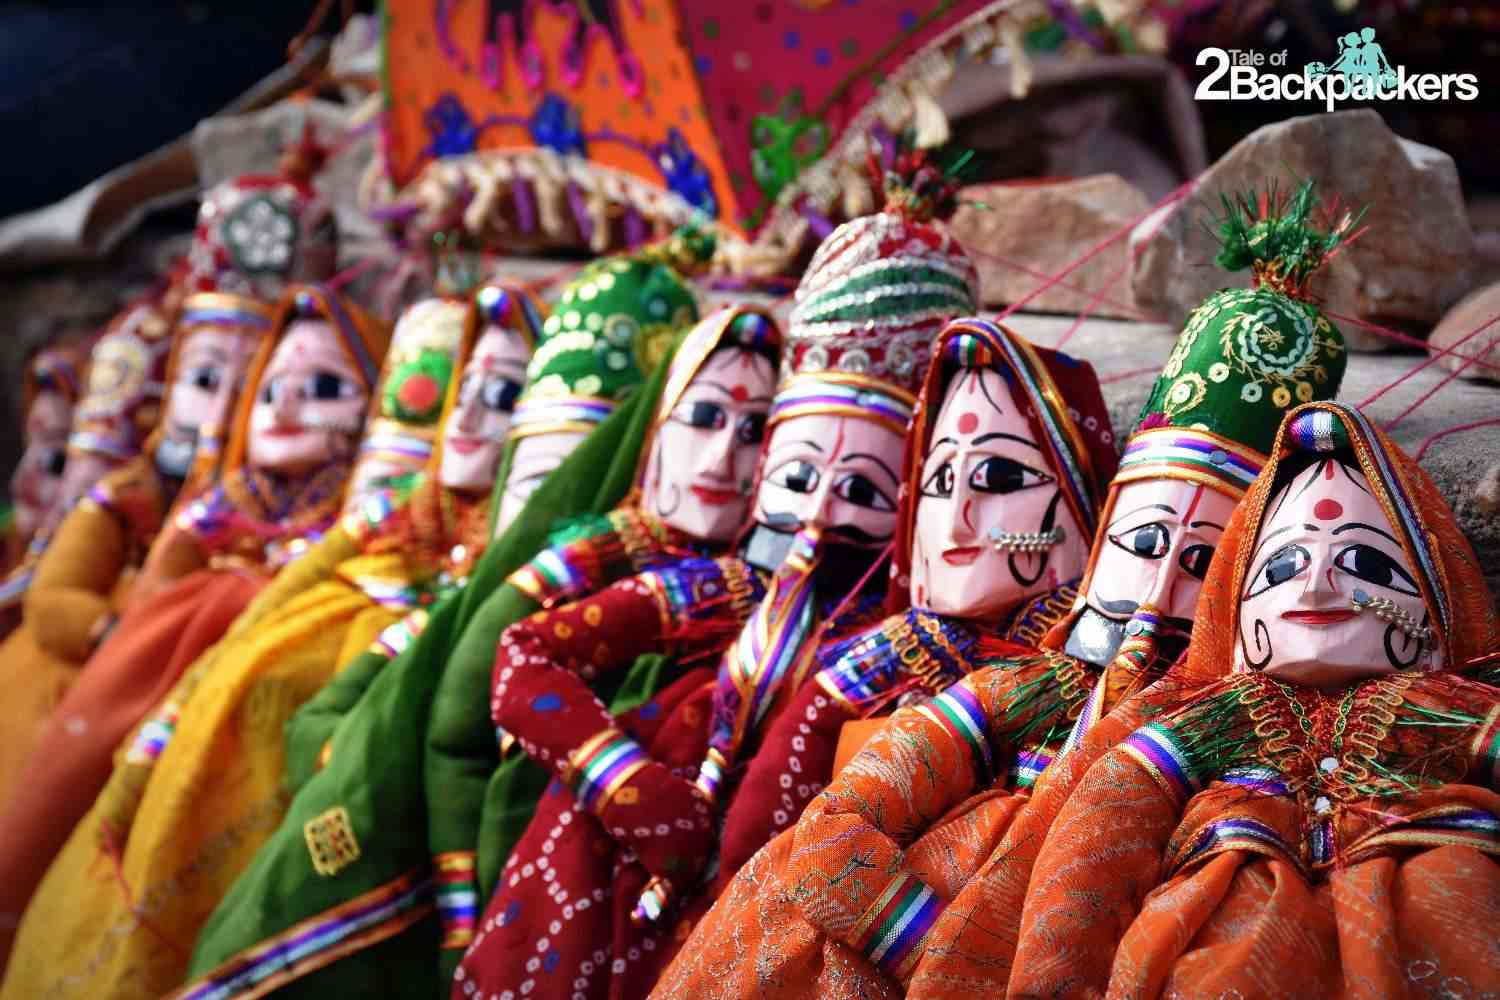 Rajasthani puppet - Kathputli, souvenirs from India